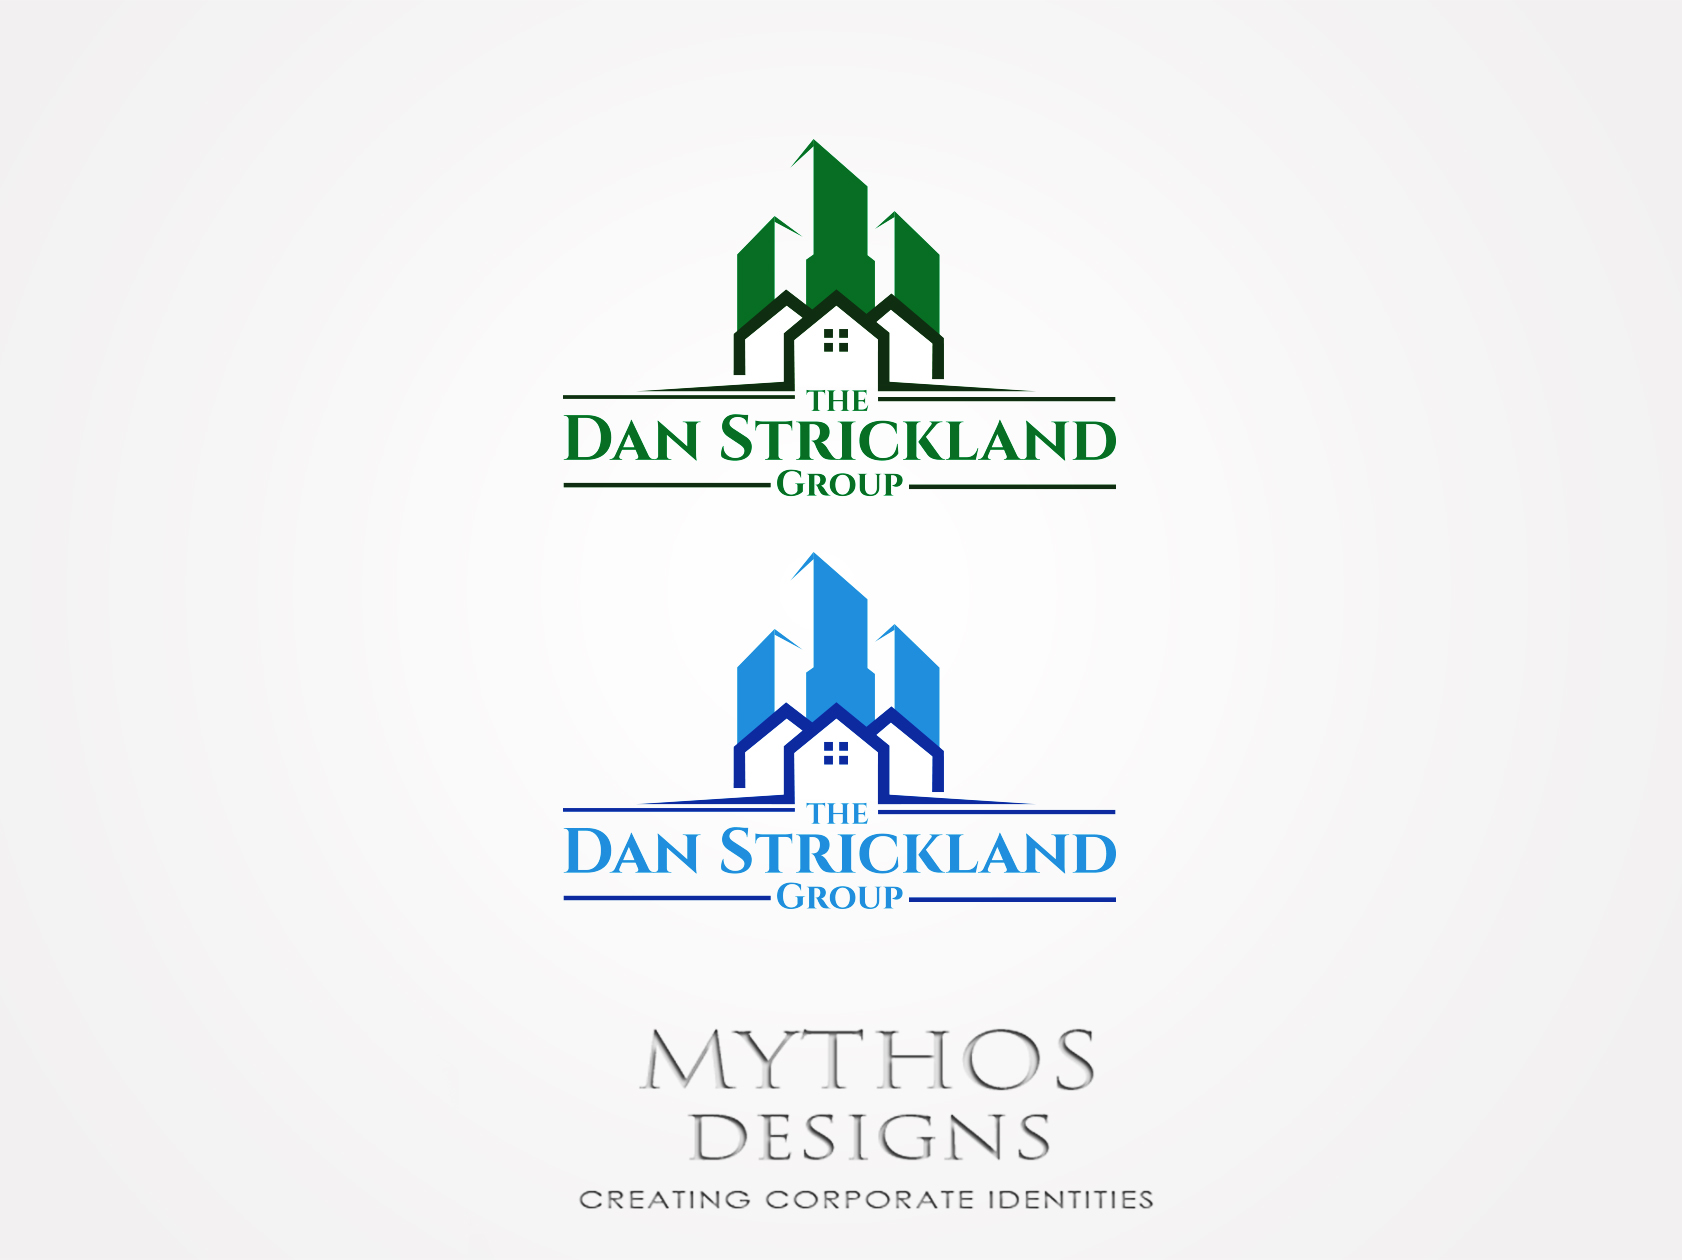 Logo Design by Mythos Designs - Entry No. 276 in the Logo Design Contest Creative Logo Design for The Dan Strickland Group.